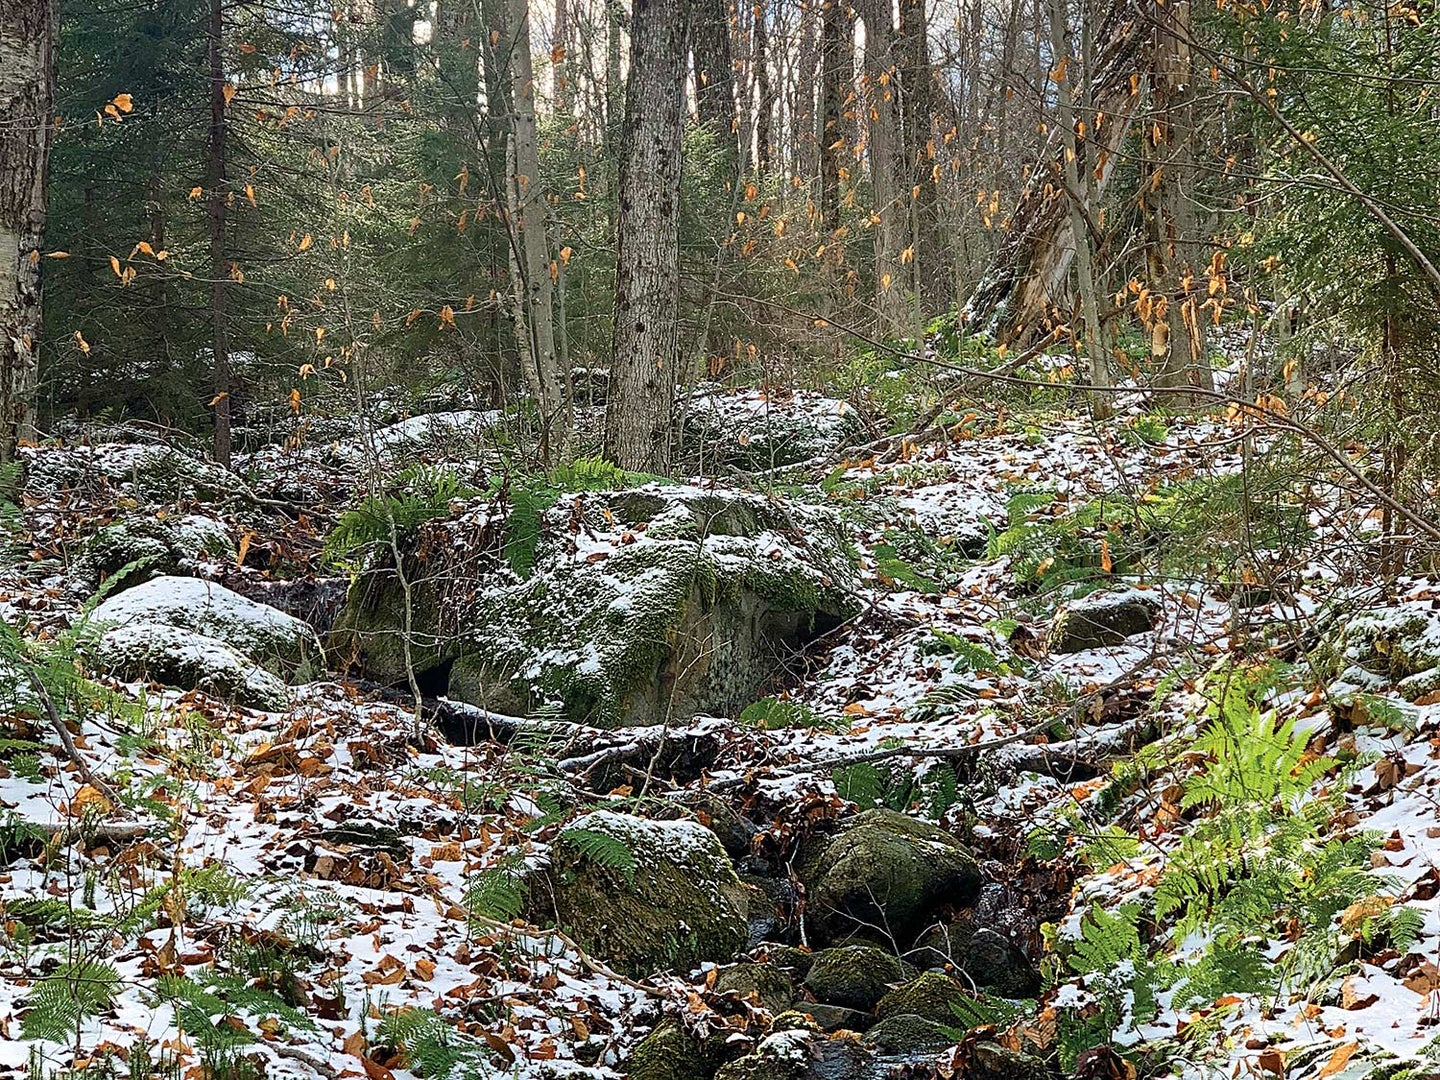 A snow covered forested area and spring.